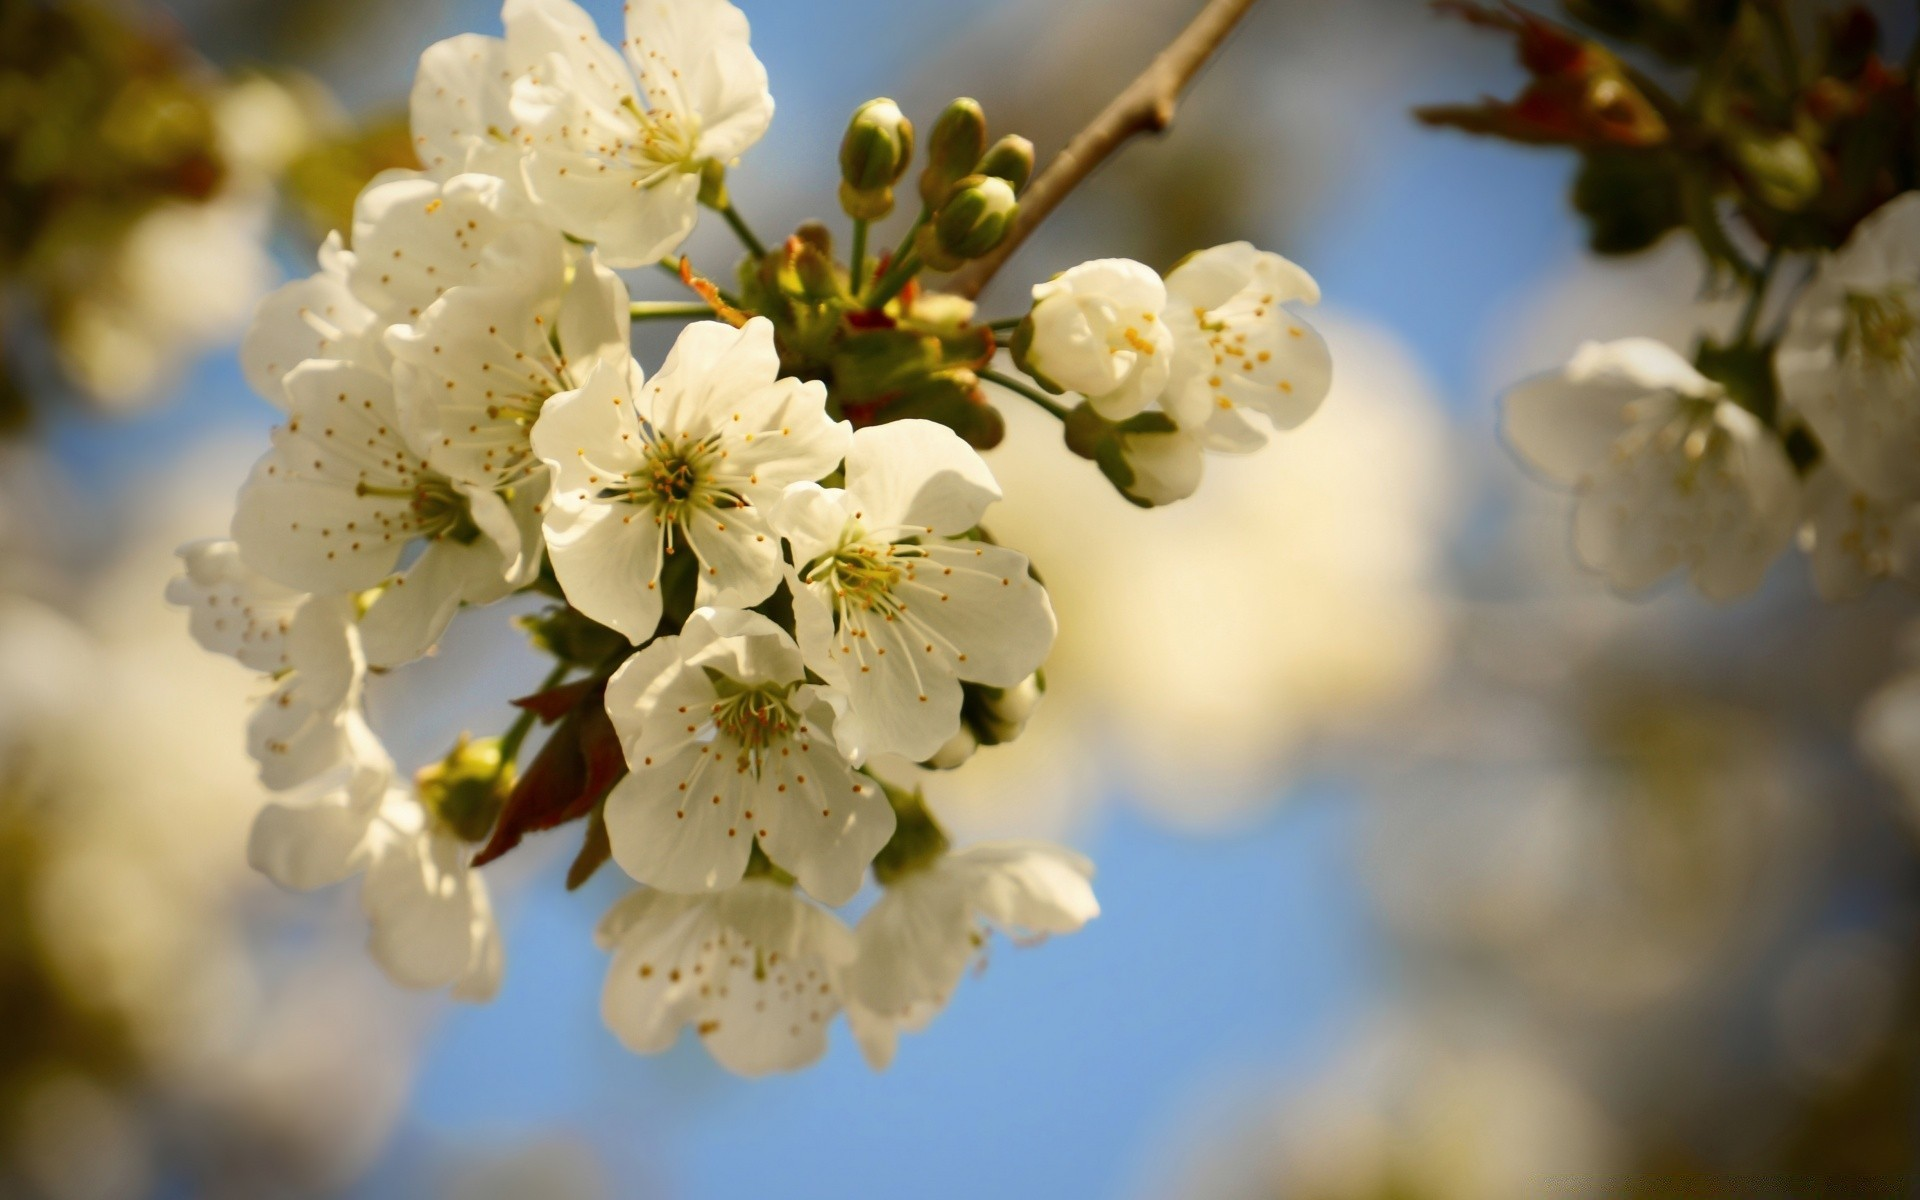 flowers nature cherry flower tree branch apple flora leaf growth garden blur fair weather outdoors summer season bud plum sun blooming